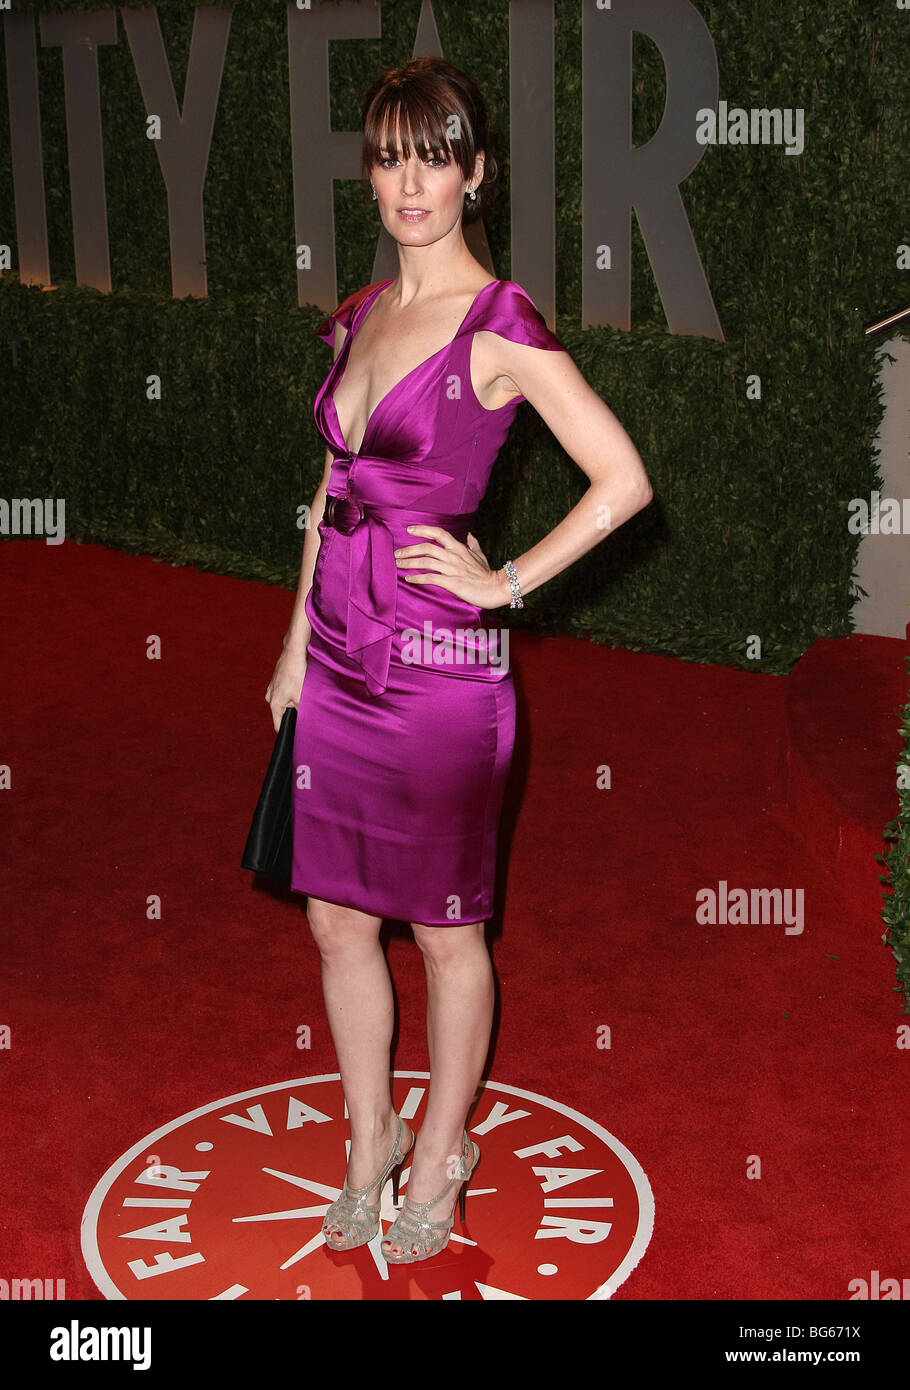 ROSEMARIE DEWITT ACTRESS WEST HOLLYWOOD  LOS ANGELES  CA  USA 22/02/2009 - Stock Image